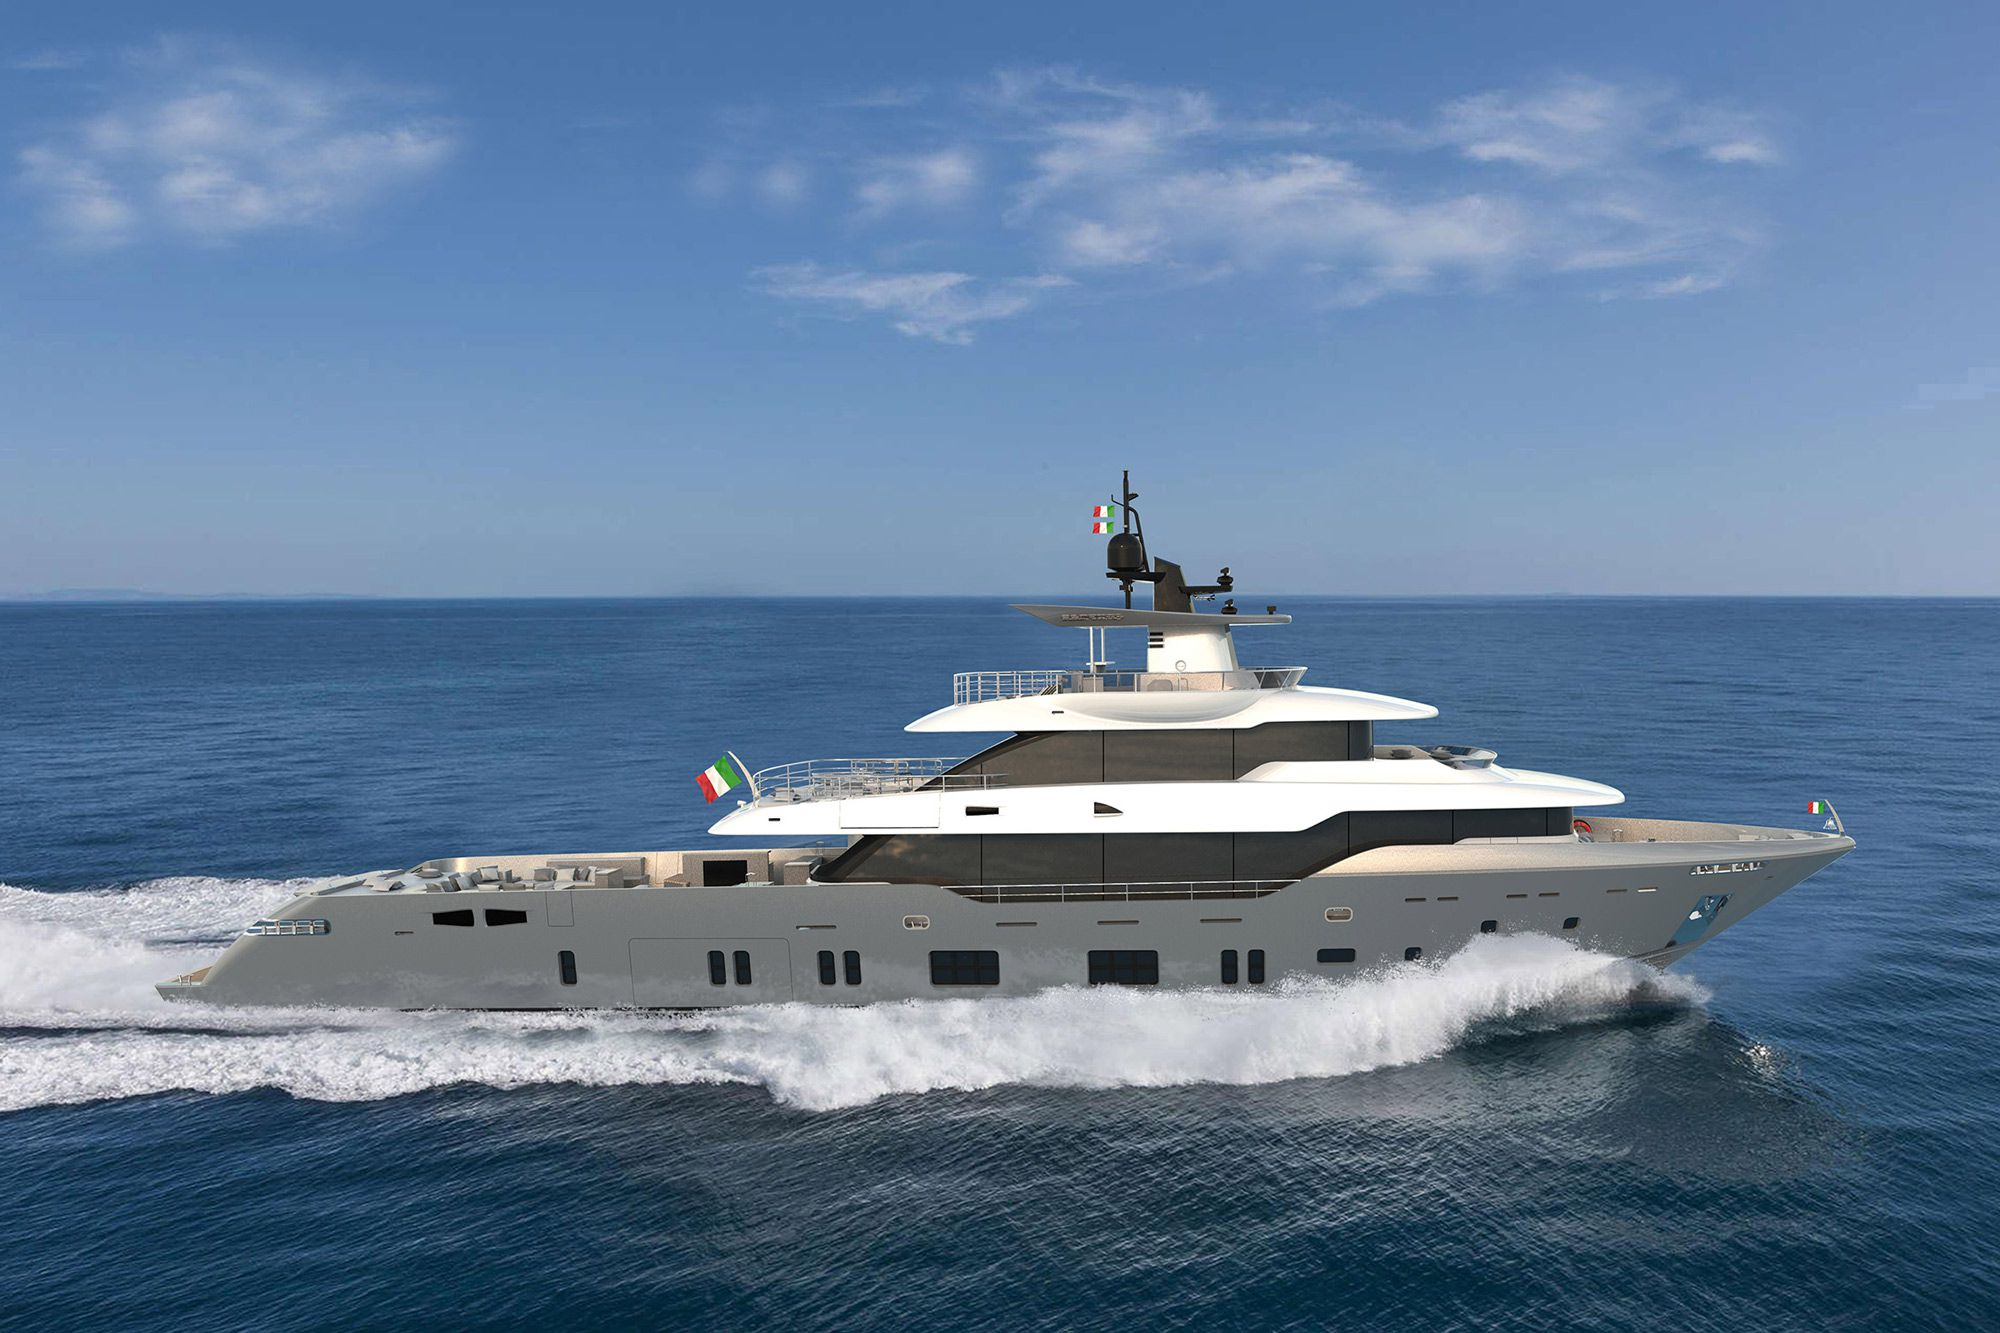 The Oceanic Yachts 140 Fast Expedition from Canados will be powered by triple Caterpillar C32 B Series engines. Range is expected to be more than 6,000 nautical miles at 10 knots.